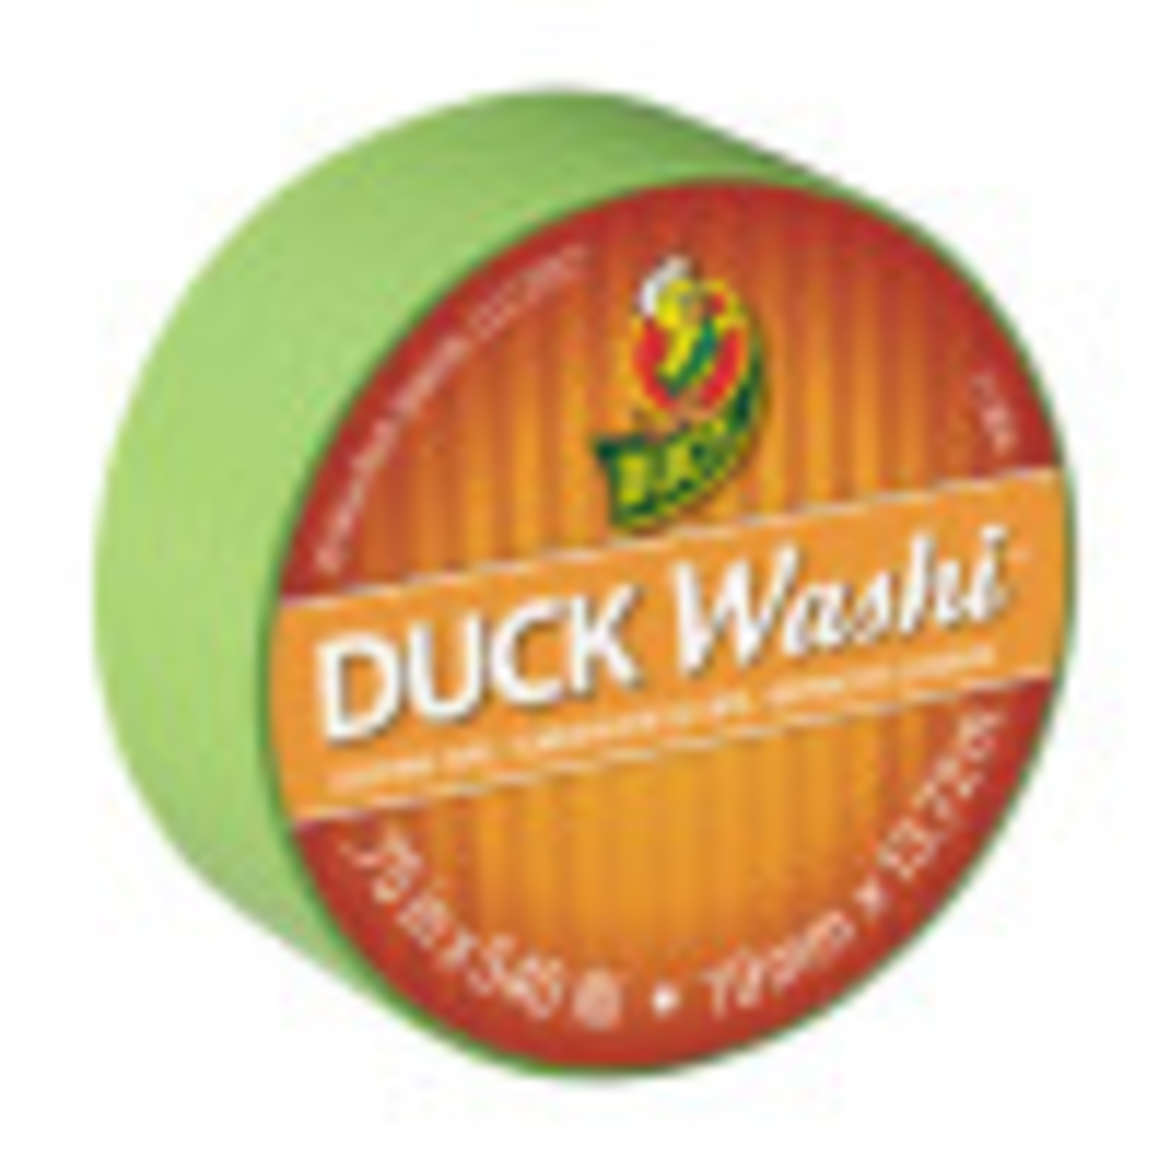 Duck Washi® Crafting Tape - Lime, 0.75 in. X 15 yd. Image